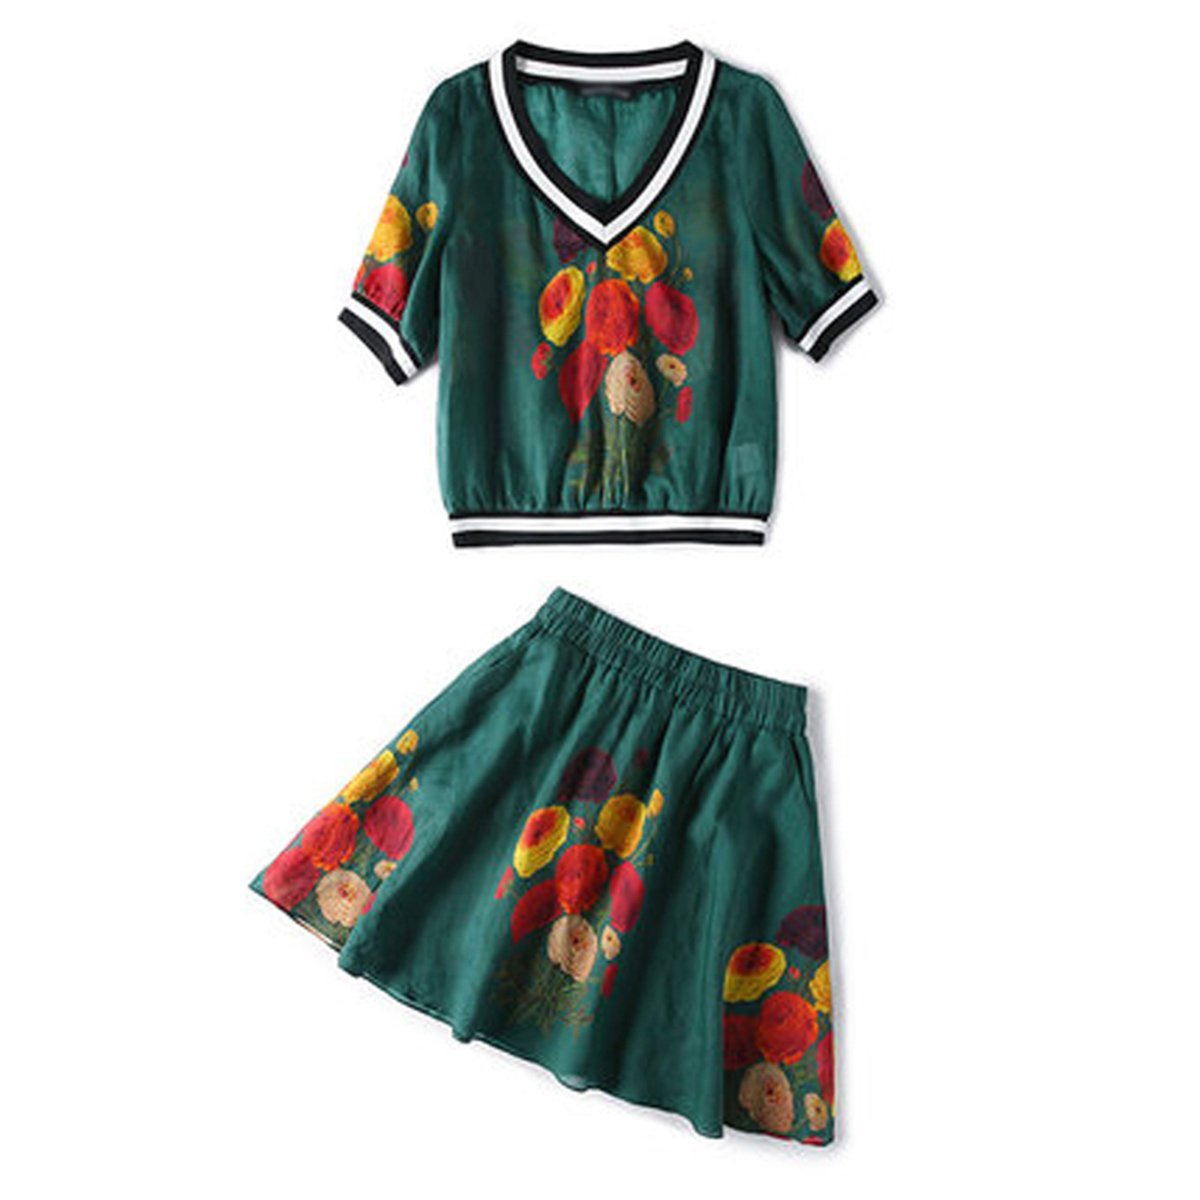 Weing Crop Top And Skirt Set Summer Women Suit Fashion Print 2 Piece Skirt And Blouse Set